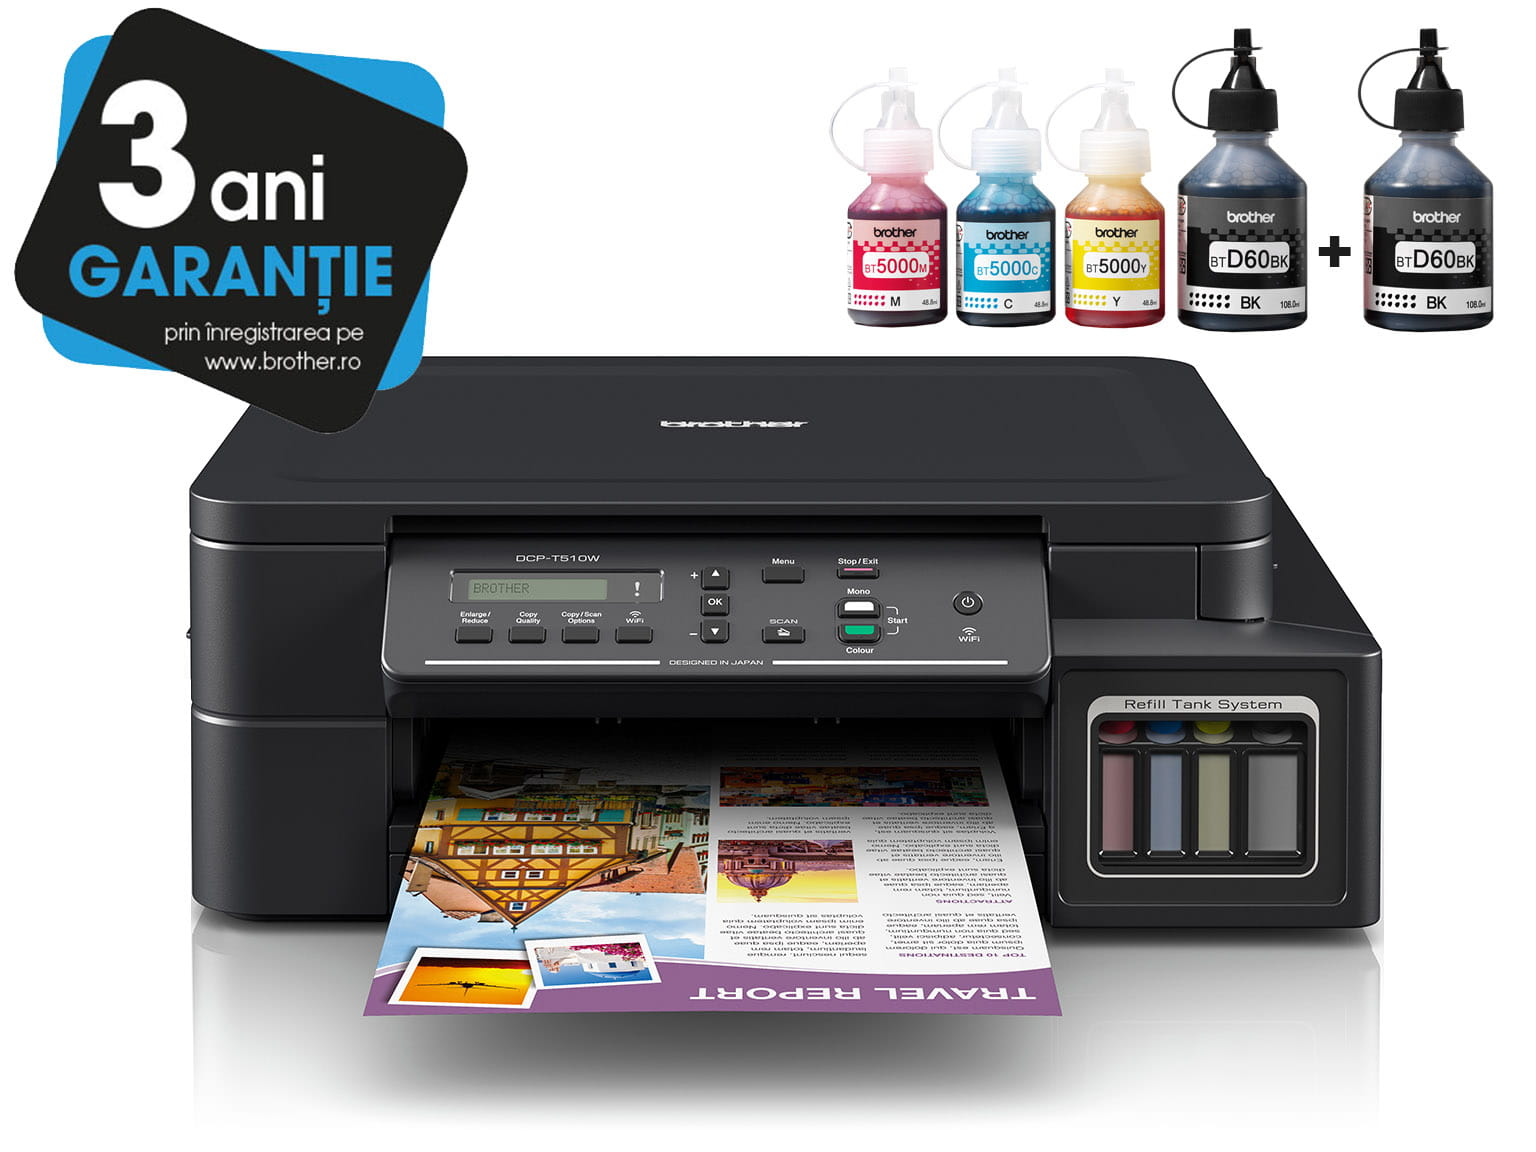 Brother InkBenefit Plus Inkjet Printer DCP-T510W with 3 Years Warranty Logotype and Ink Bottles